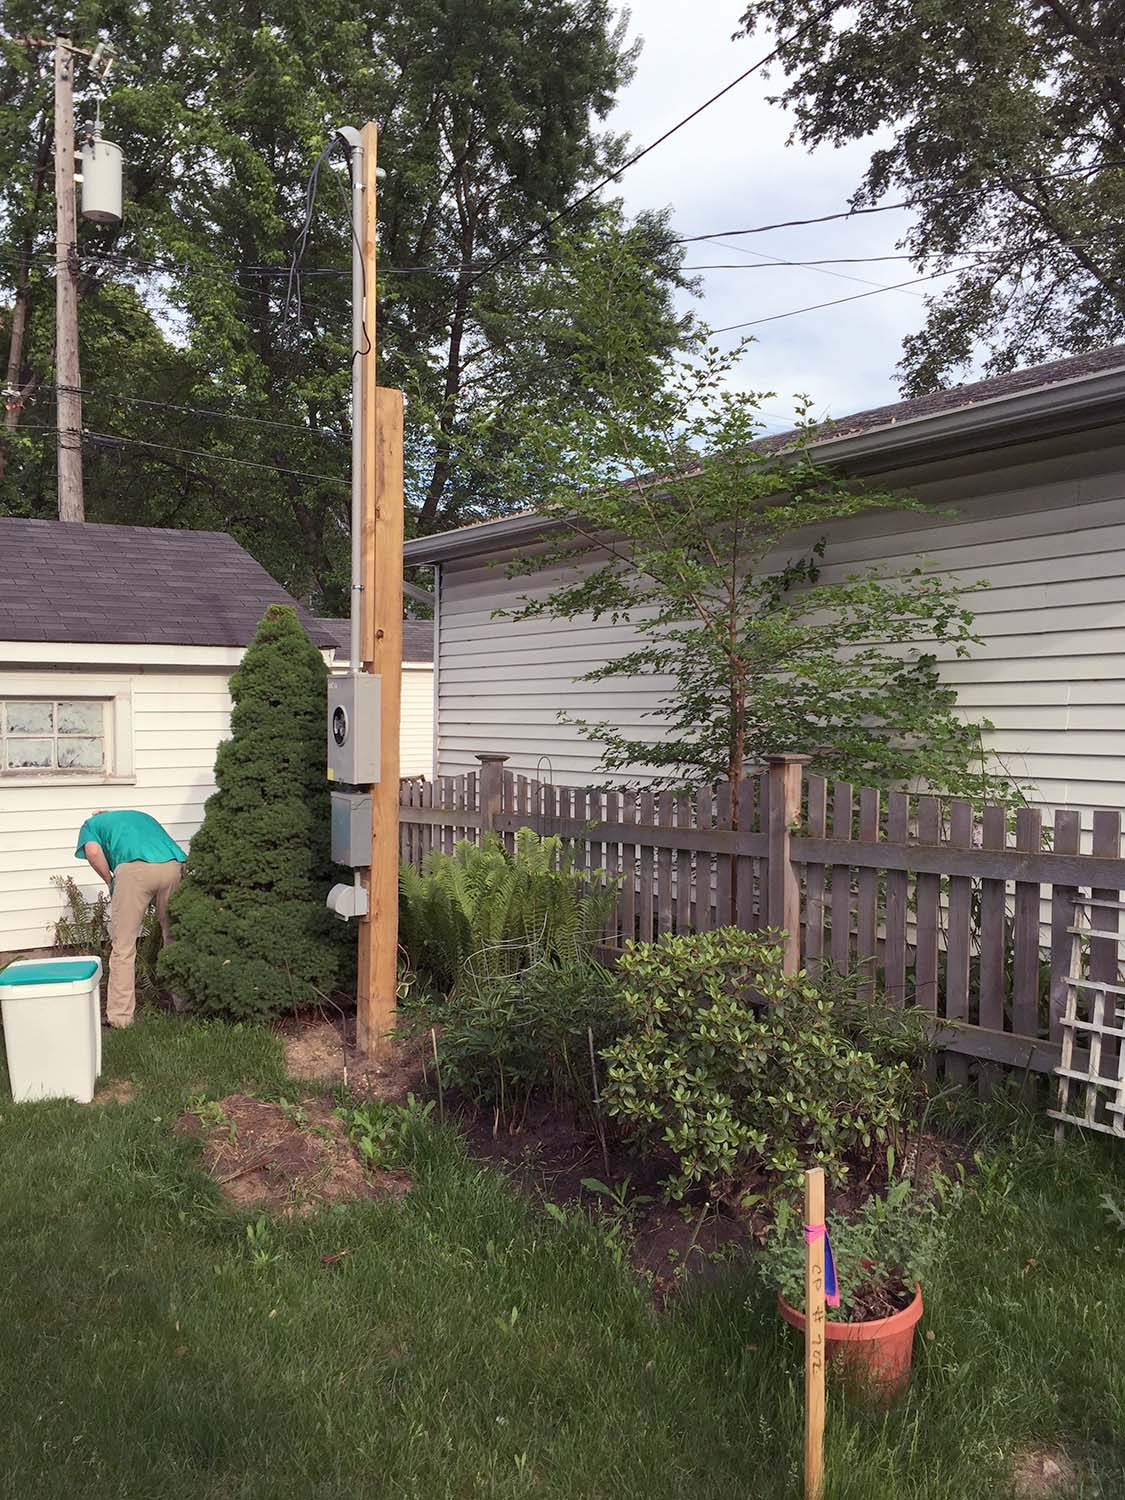 We kept the small conifer behind the pole, and transplanted the rest.  The fence was salvaged and is now part of the screened porch.